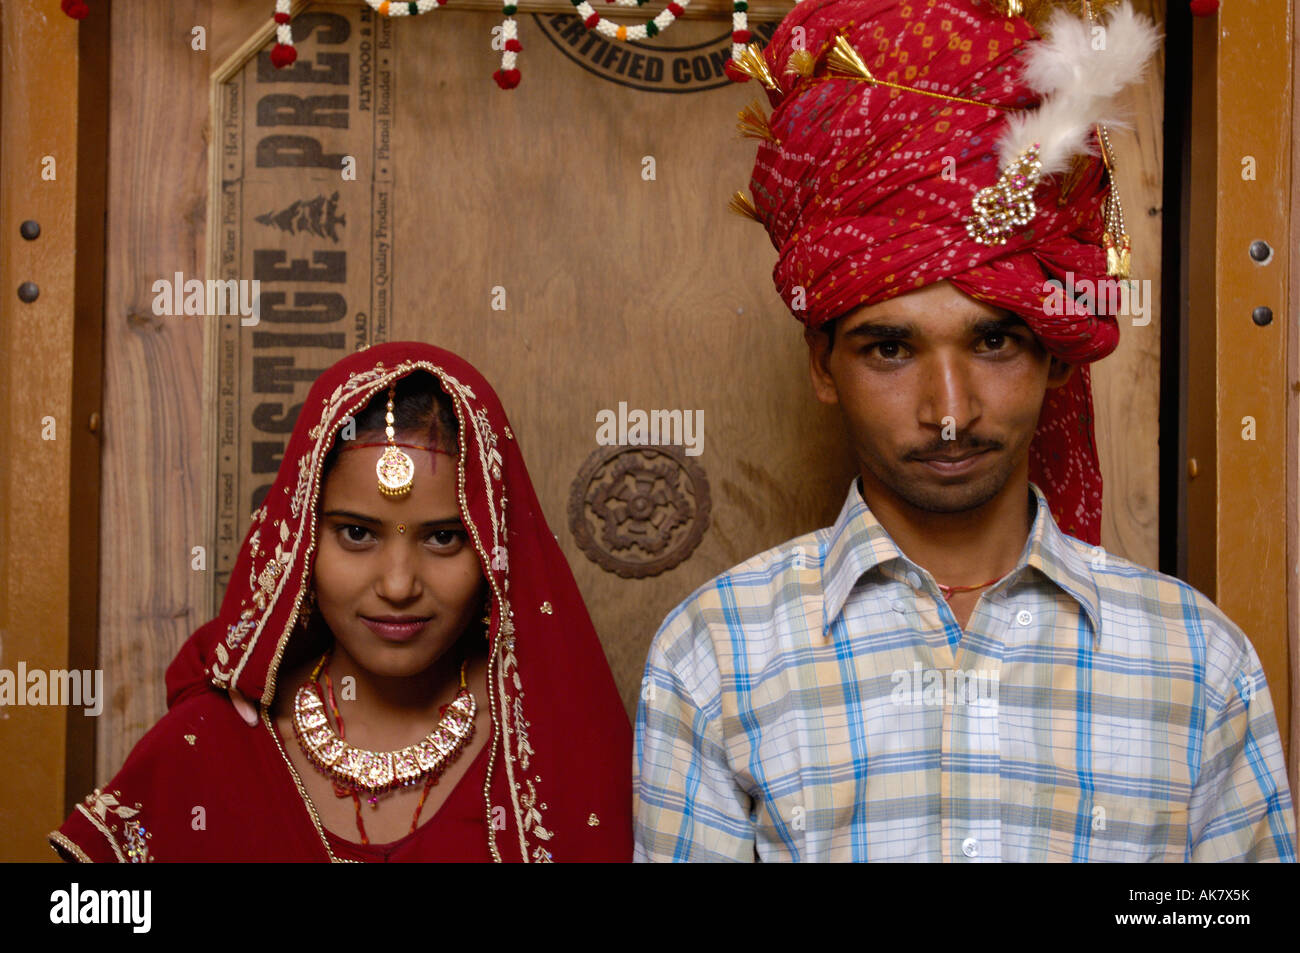 Rajasthani Village Bride Groom 3 Days After Their Wedding Pushkar Rajasthan INDIA